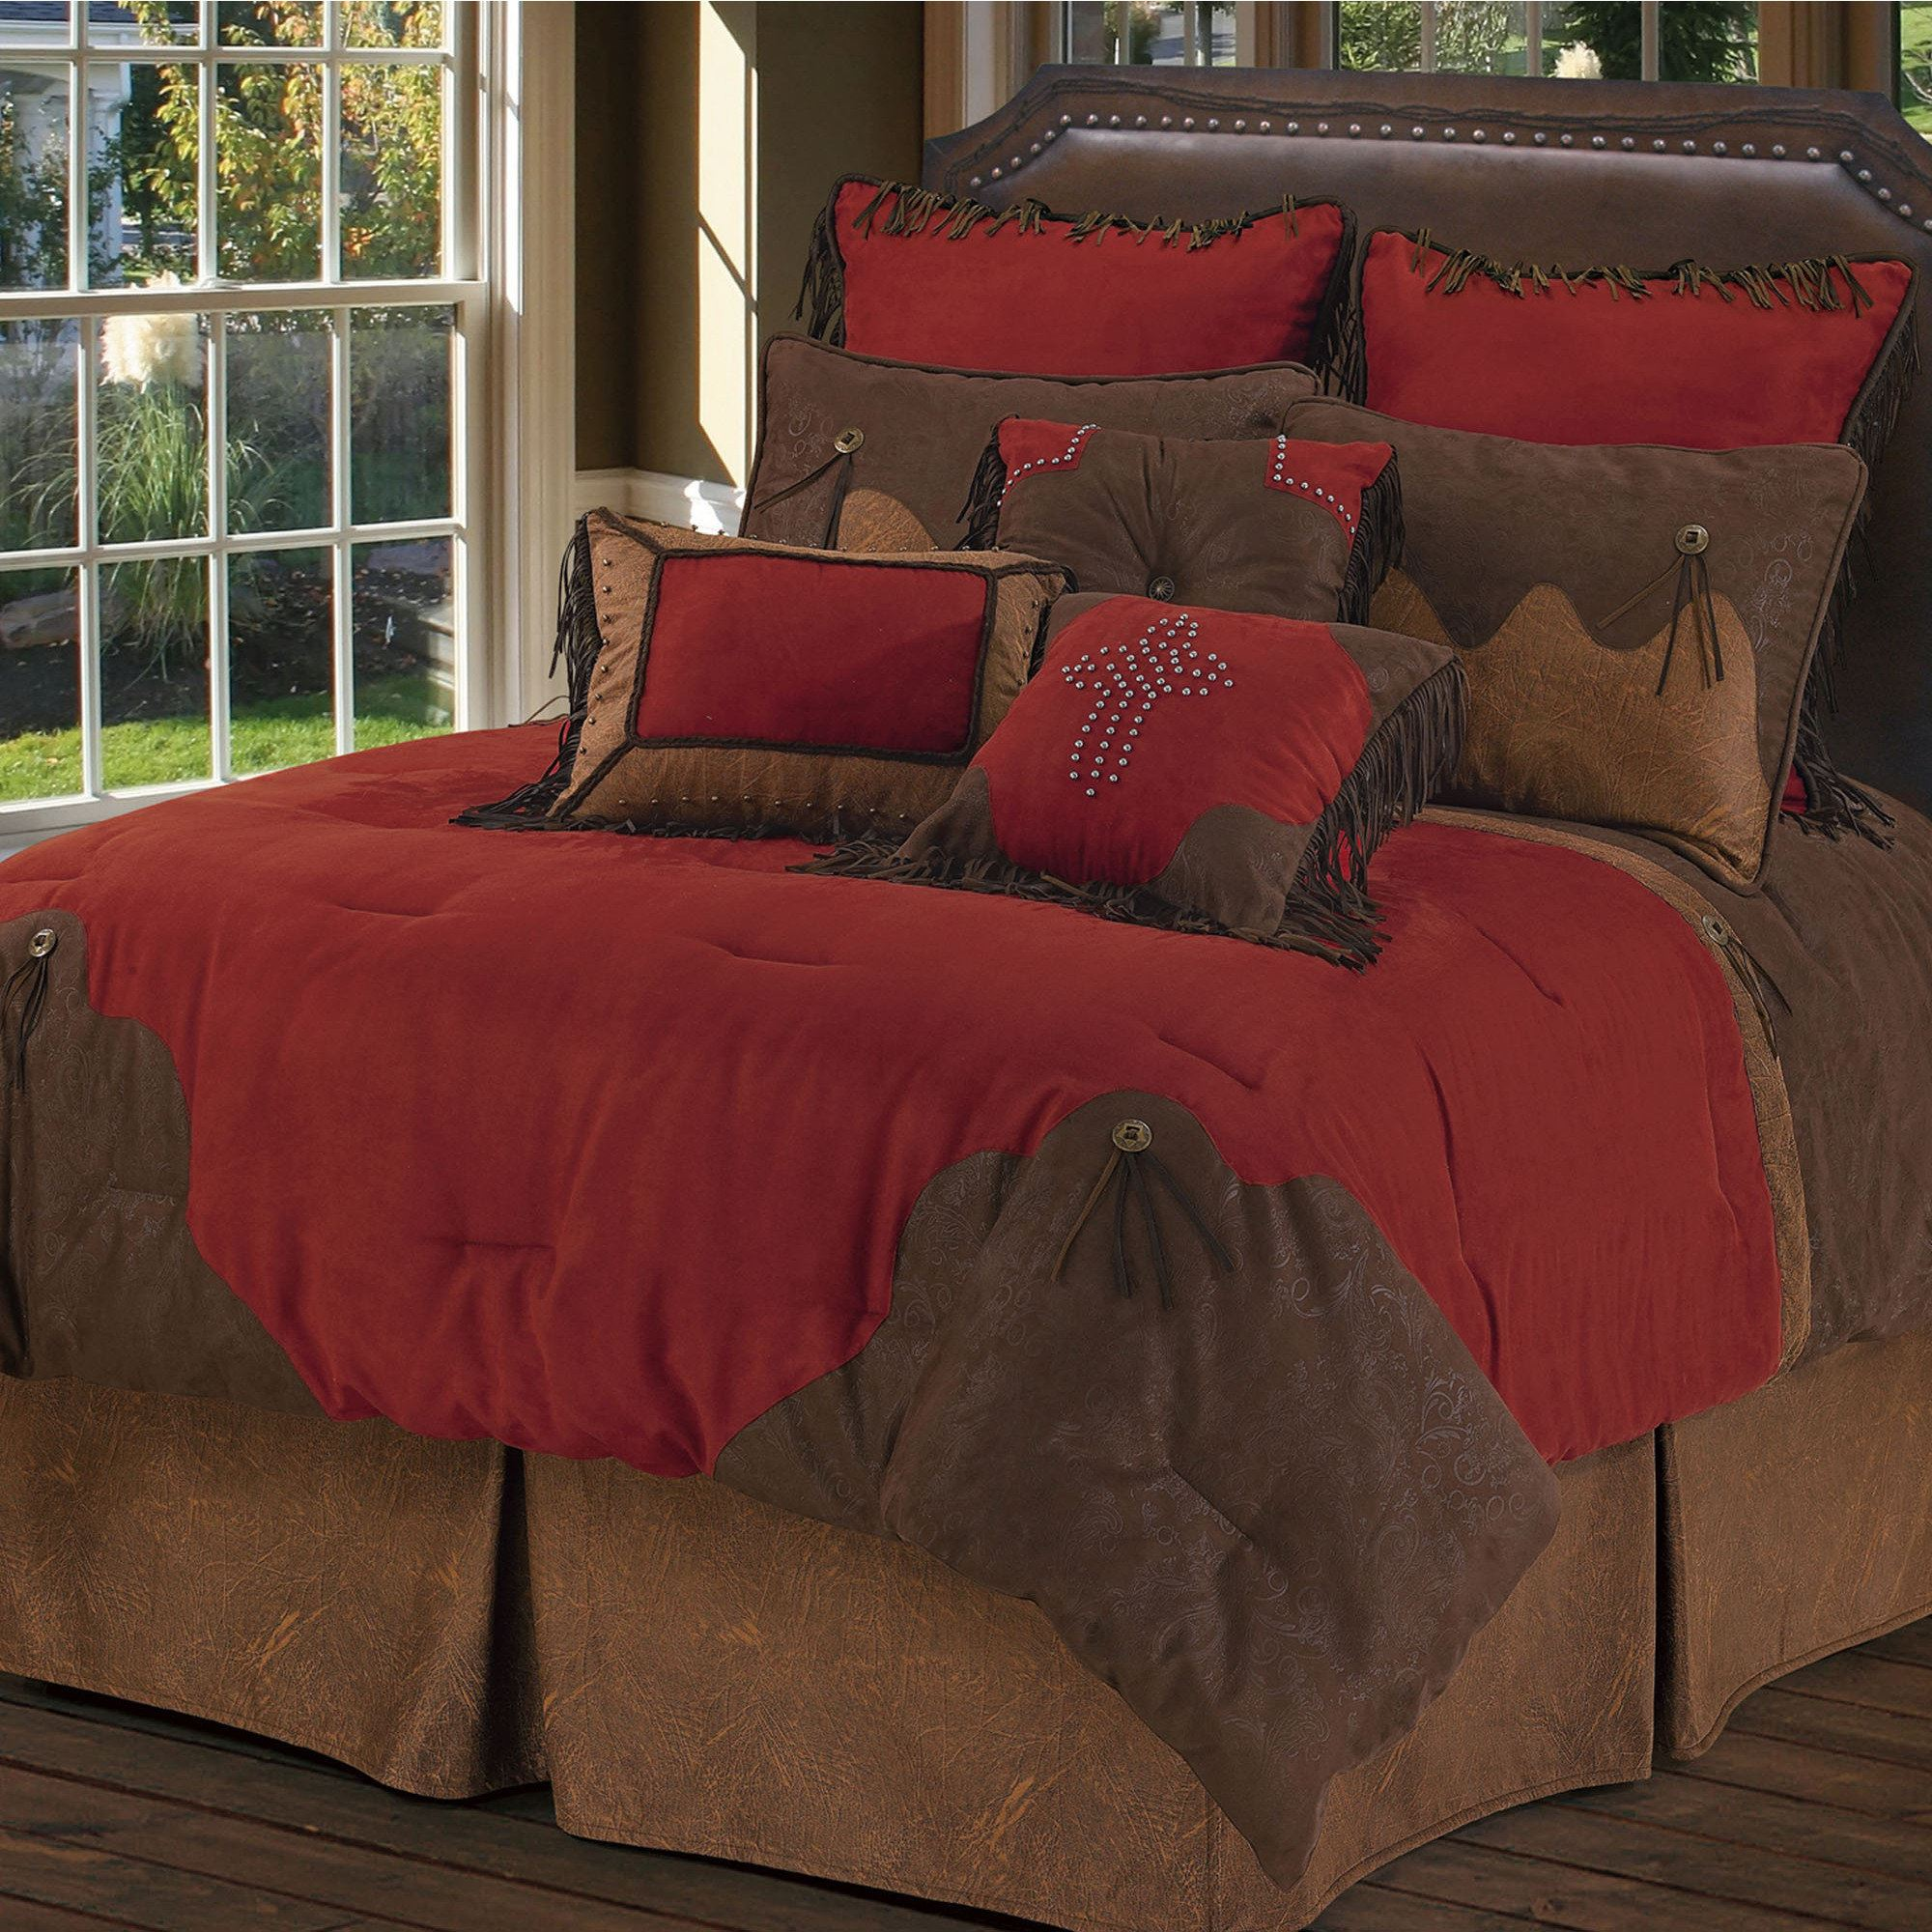 Red Rodeo Western Comforter Bed Set